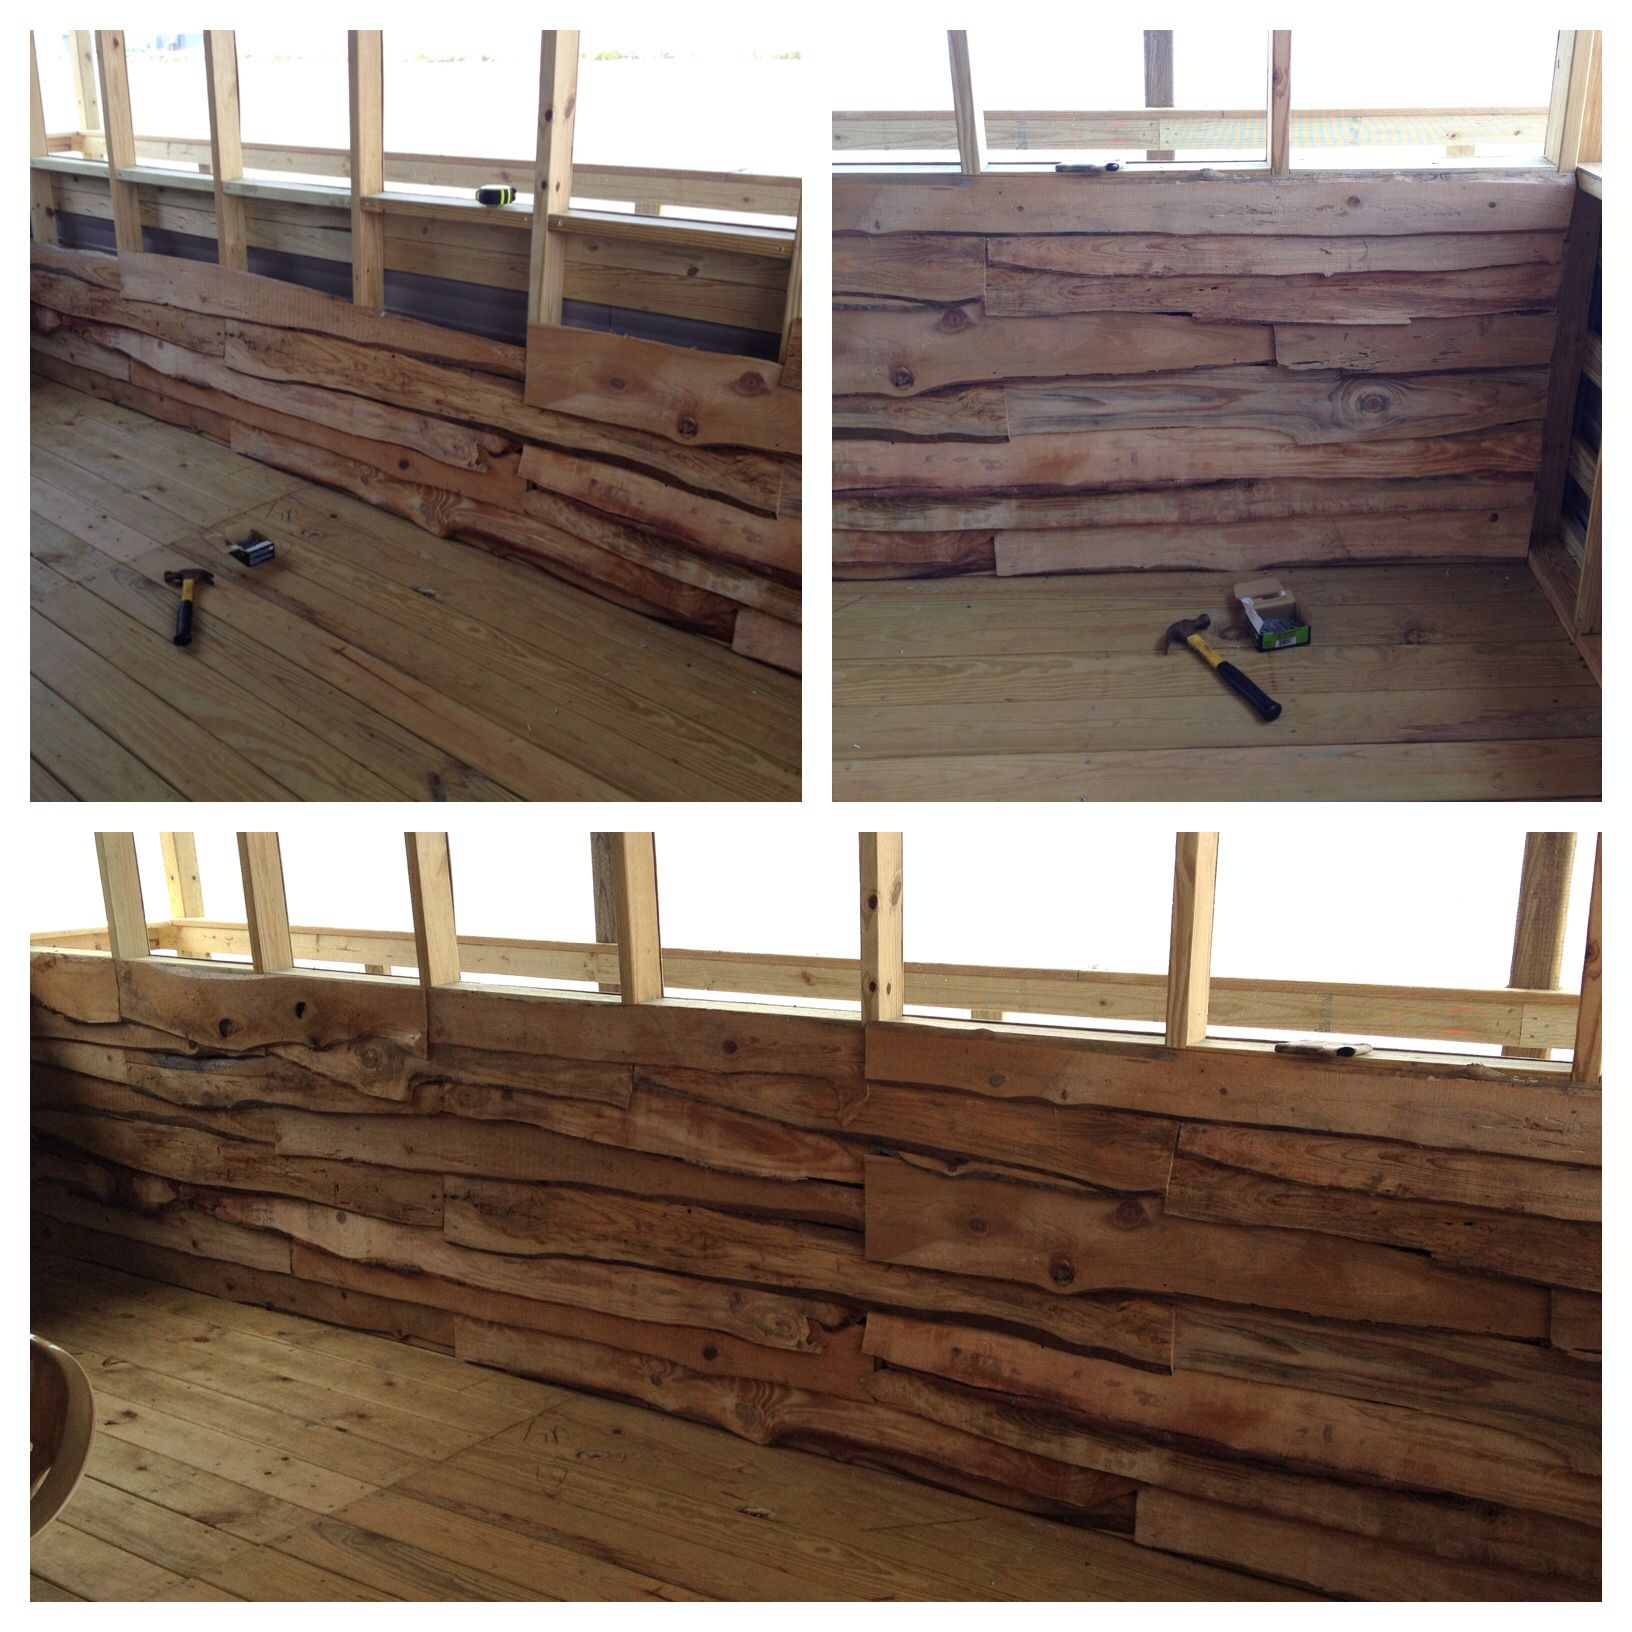 Screened Patio Inside Walls, Rough Cut Lumber, Upcycling Old Wood, Camp  Patio